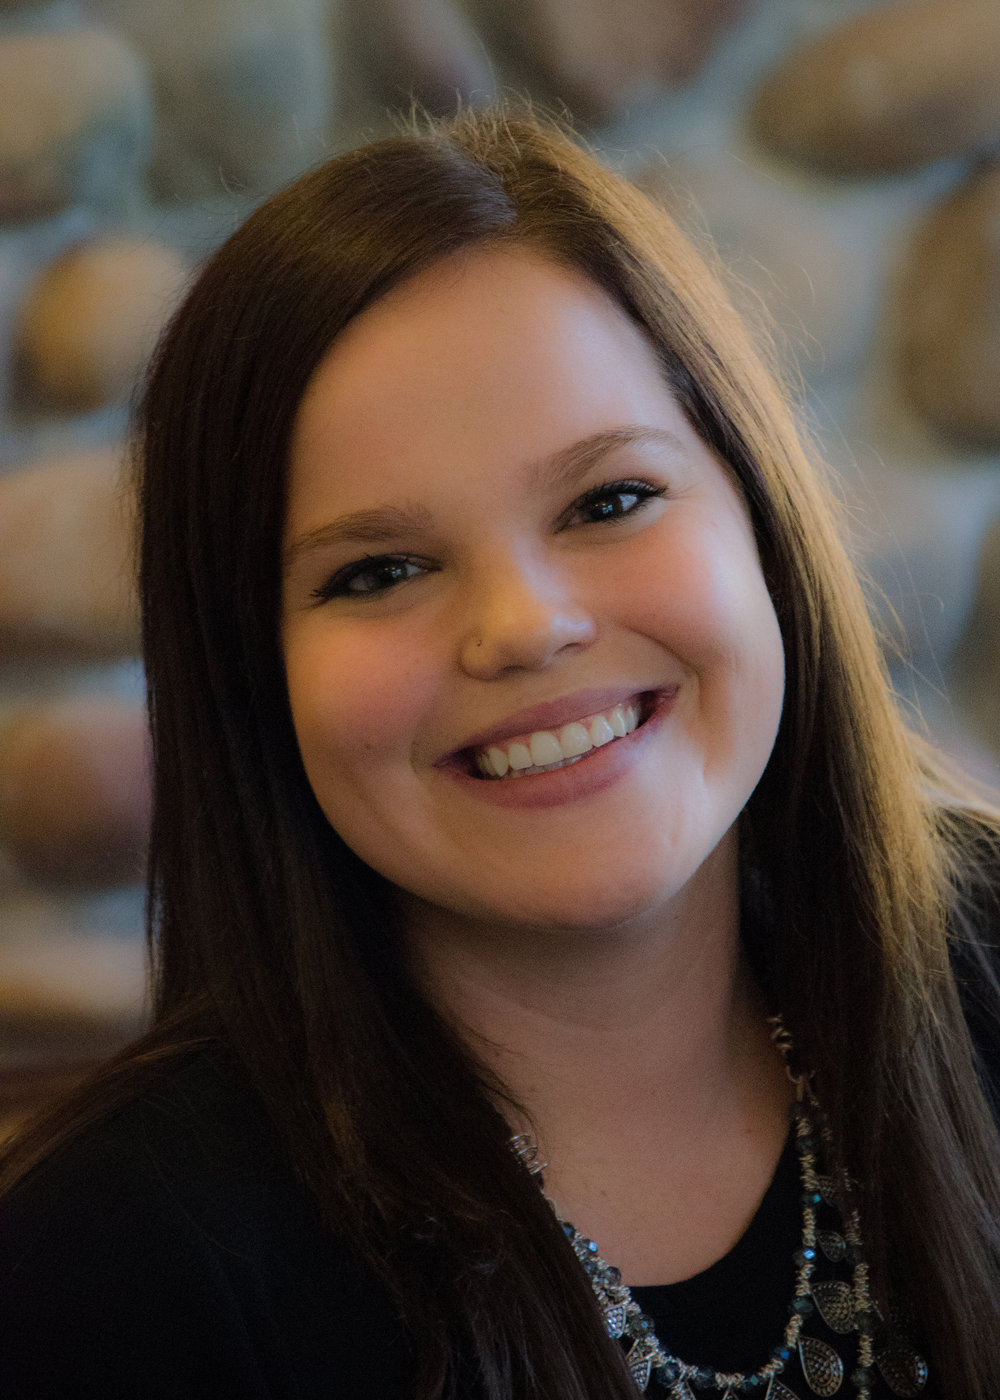 Ashleigh Creps - Ashleigh Creps is a Certified Social Worker (CSW) and graduated with her Masters in Social Work from the University of Utah. She works with individuals and couples.